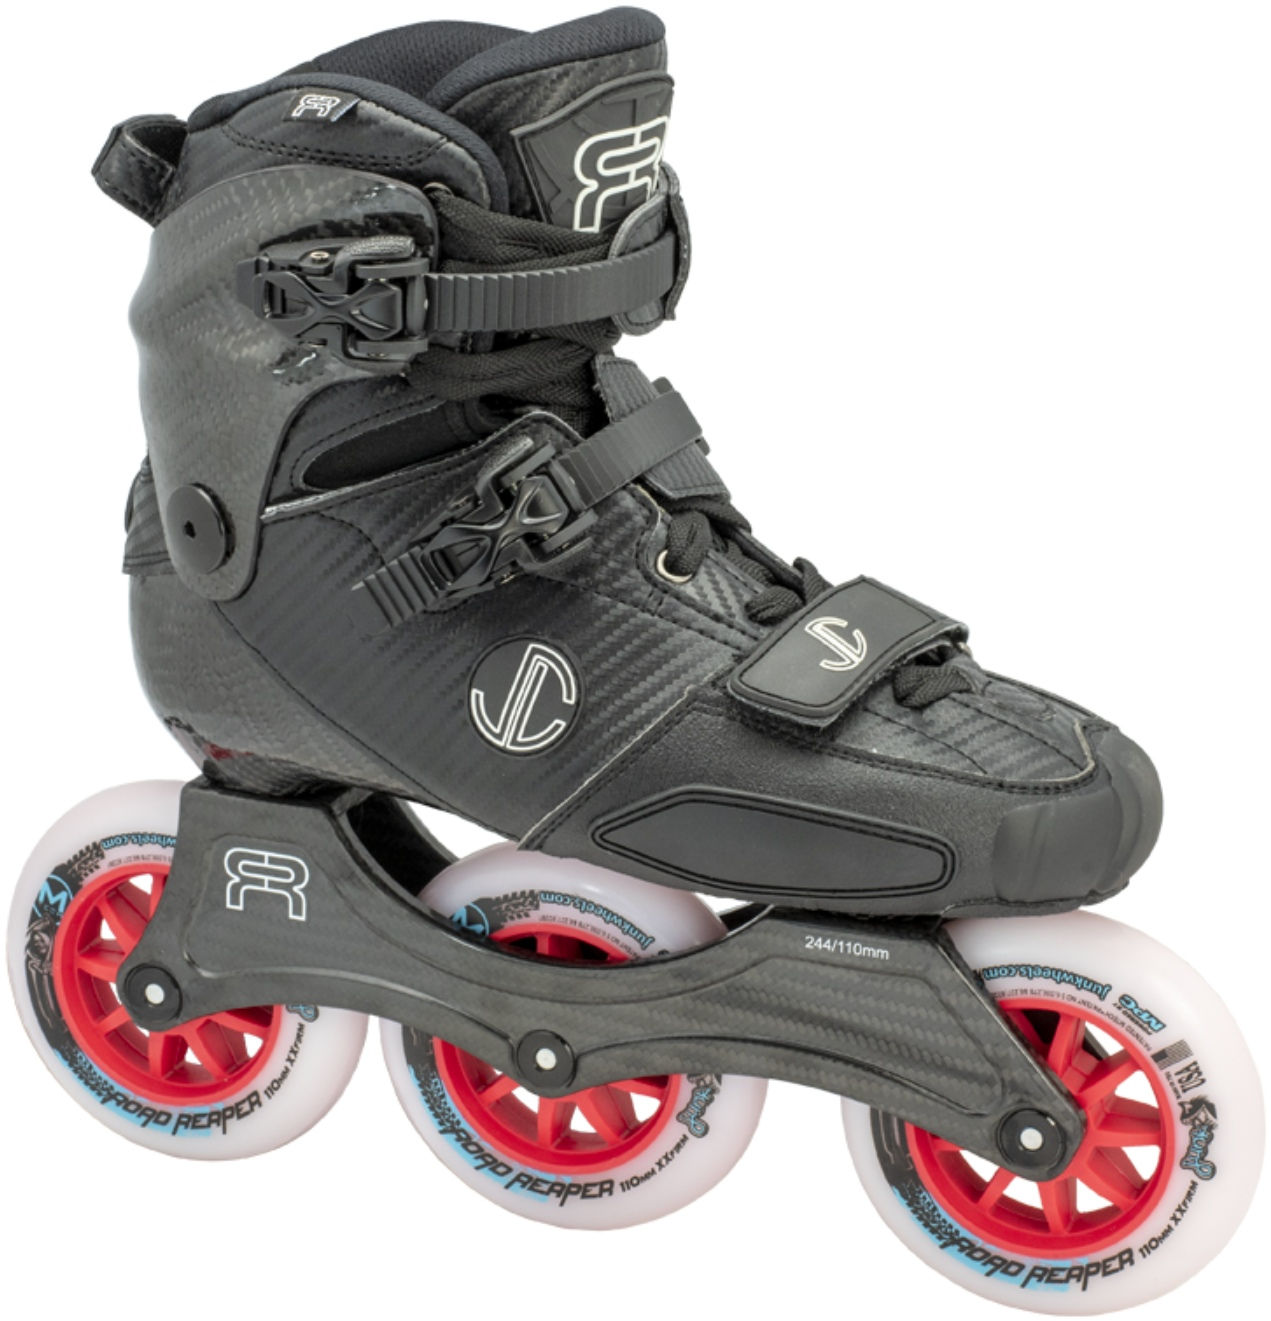 Black FR SL Carbon skate with white 110 mm MPC wheels for speed slalom